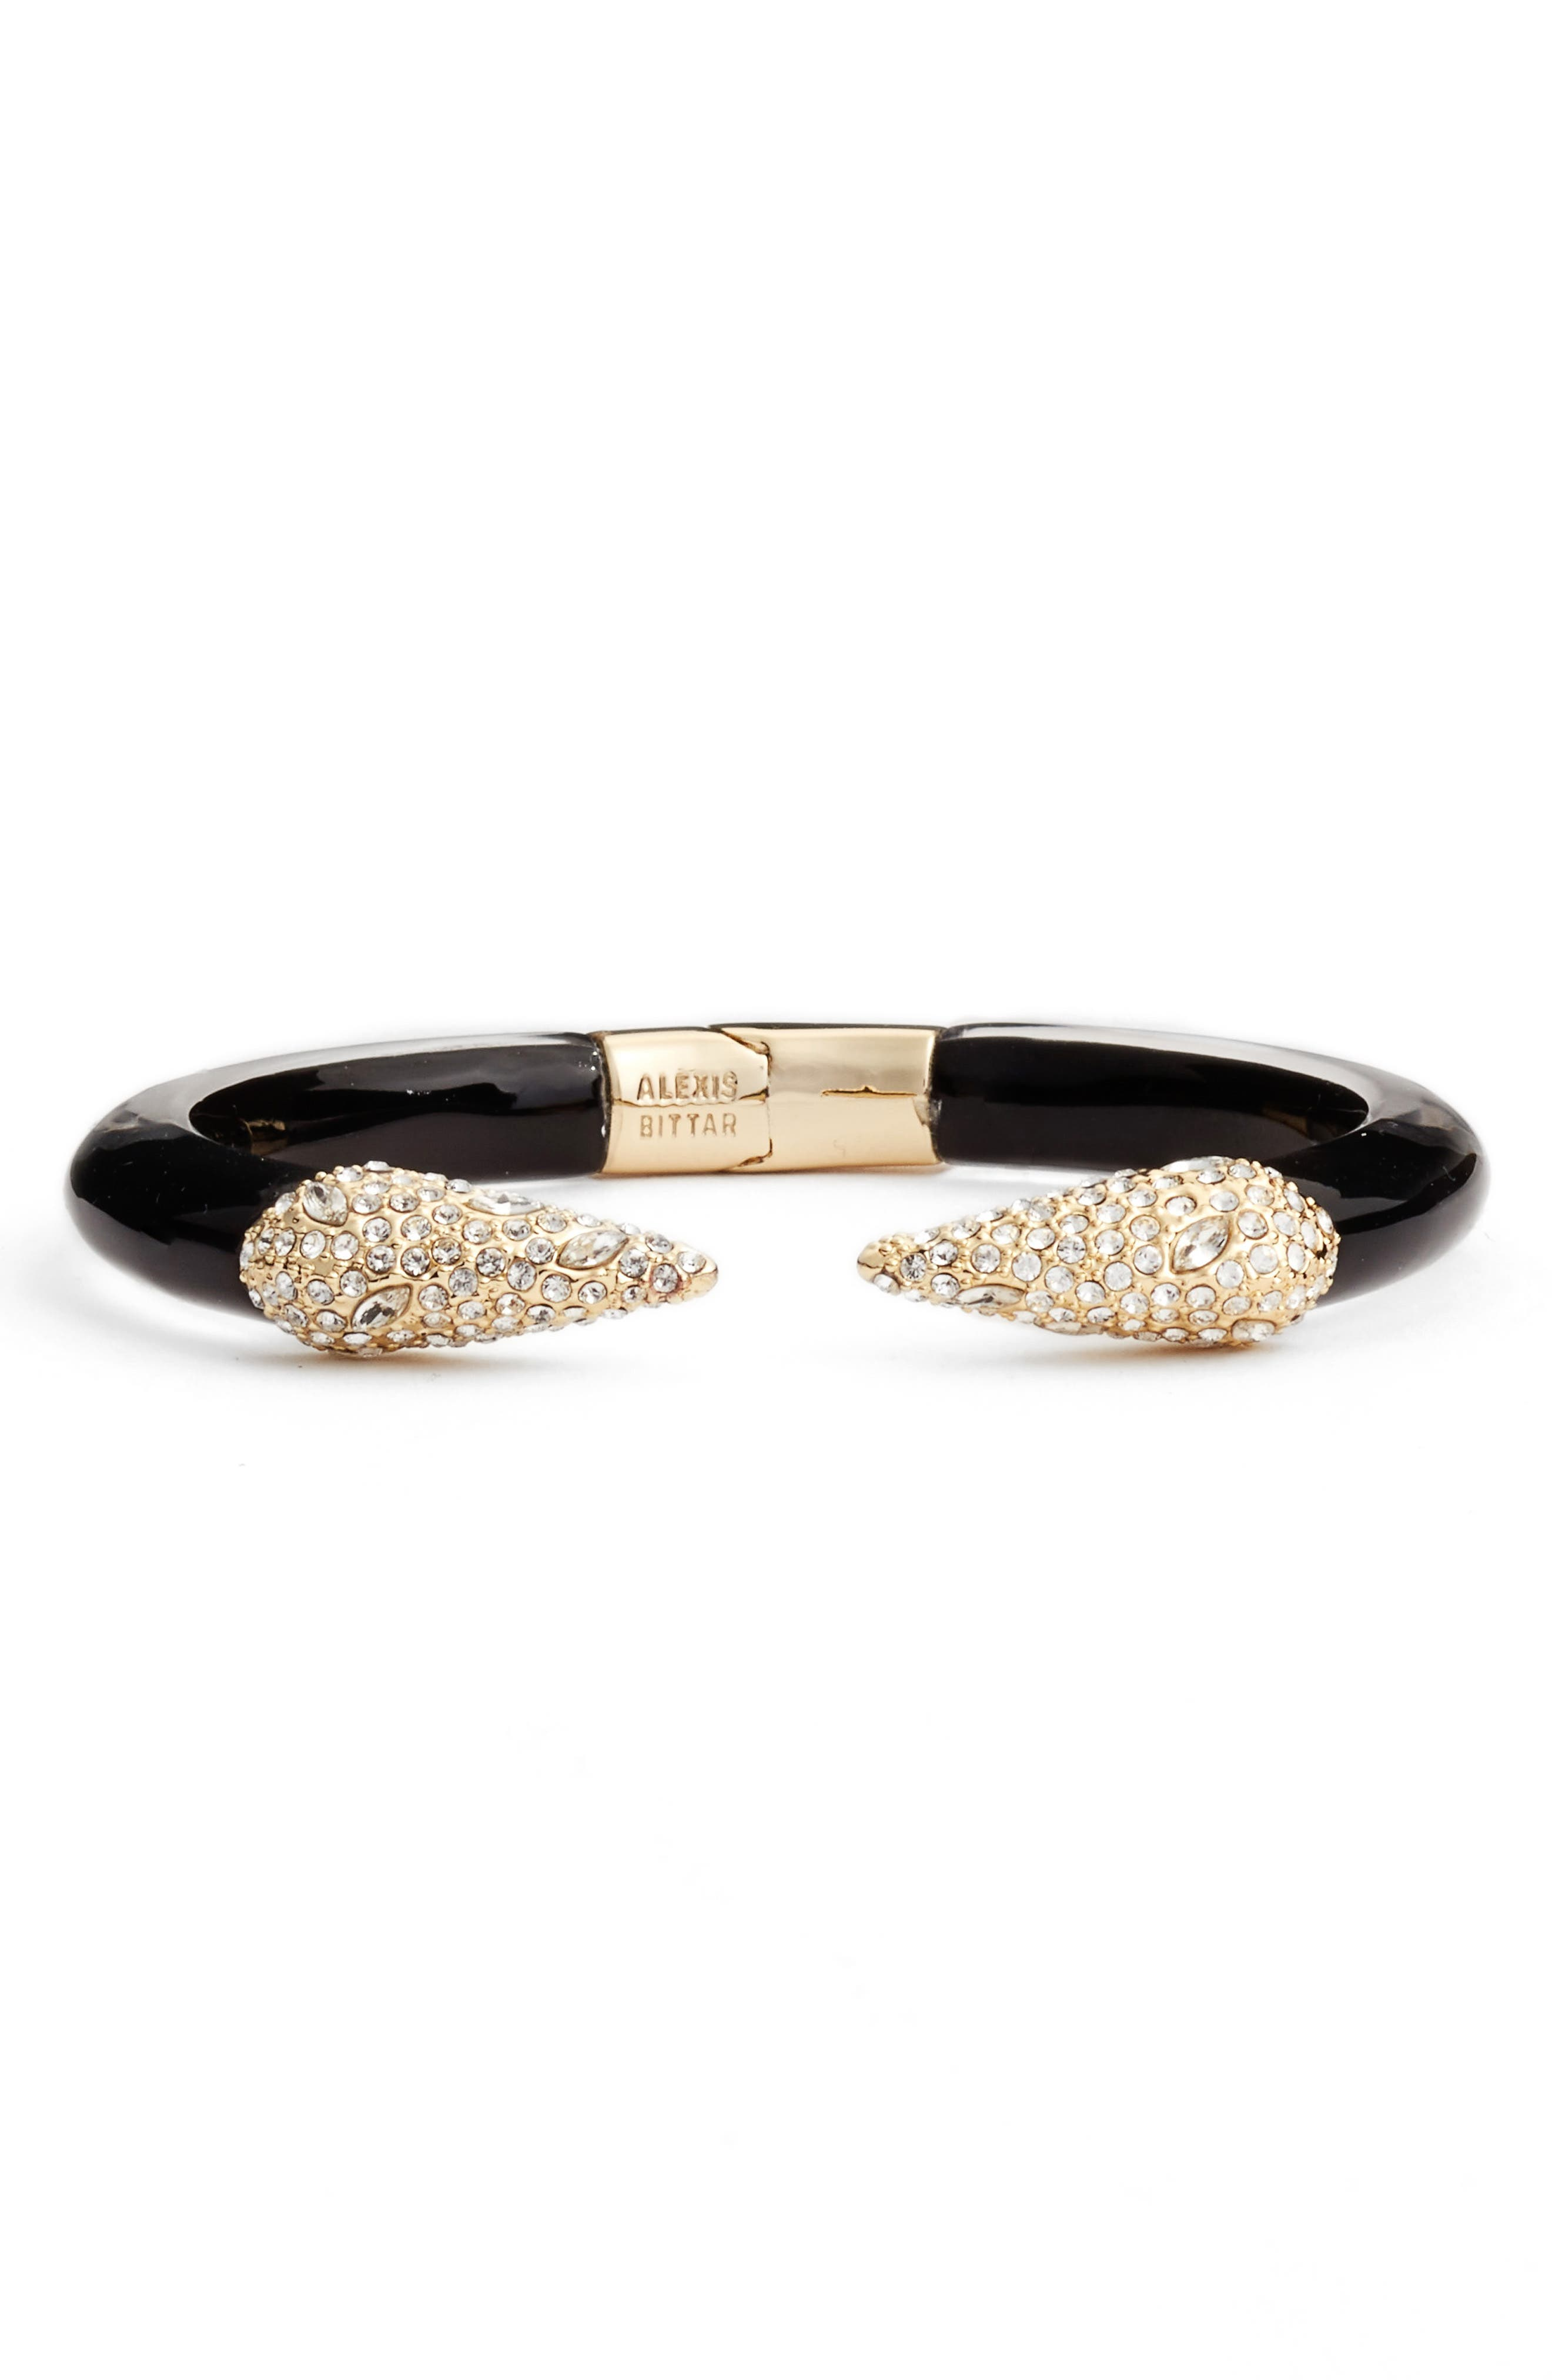 Encrusted Hinge Bracelet,                         Main,                         color, Black